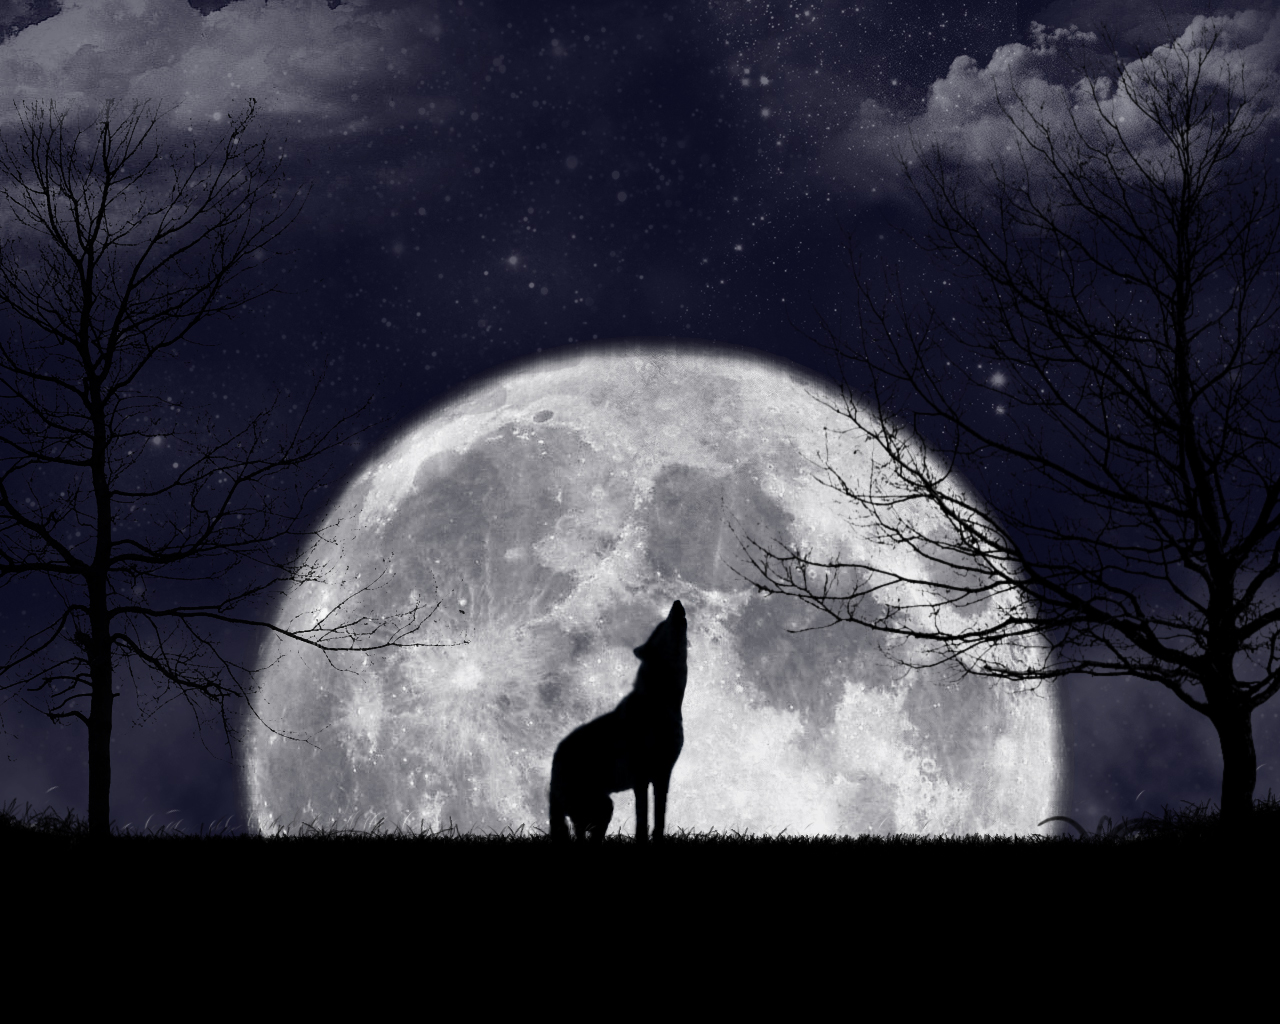 Howling At The Moon by zanardo on DeviantArt